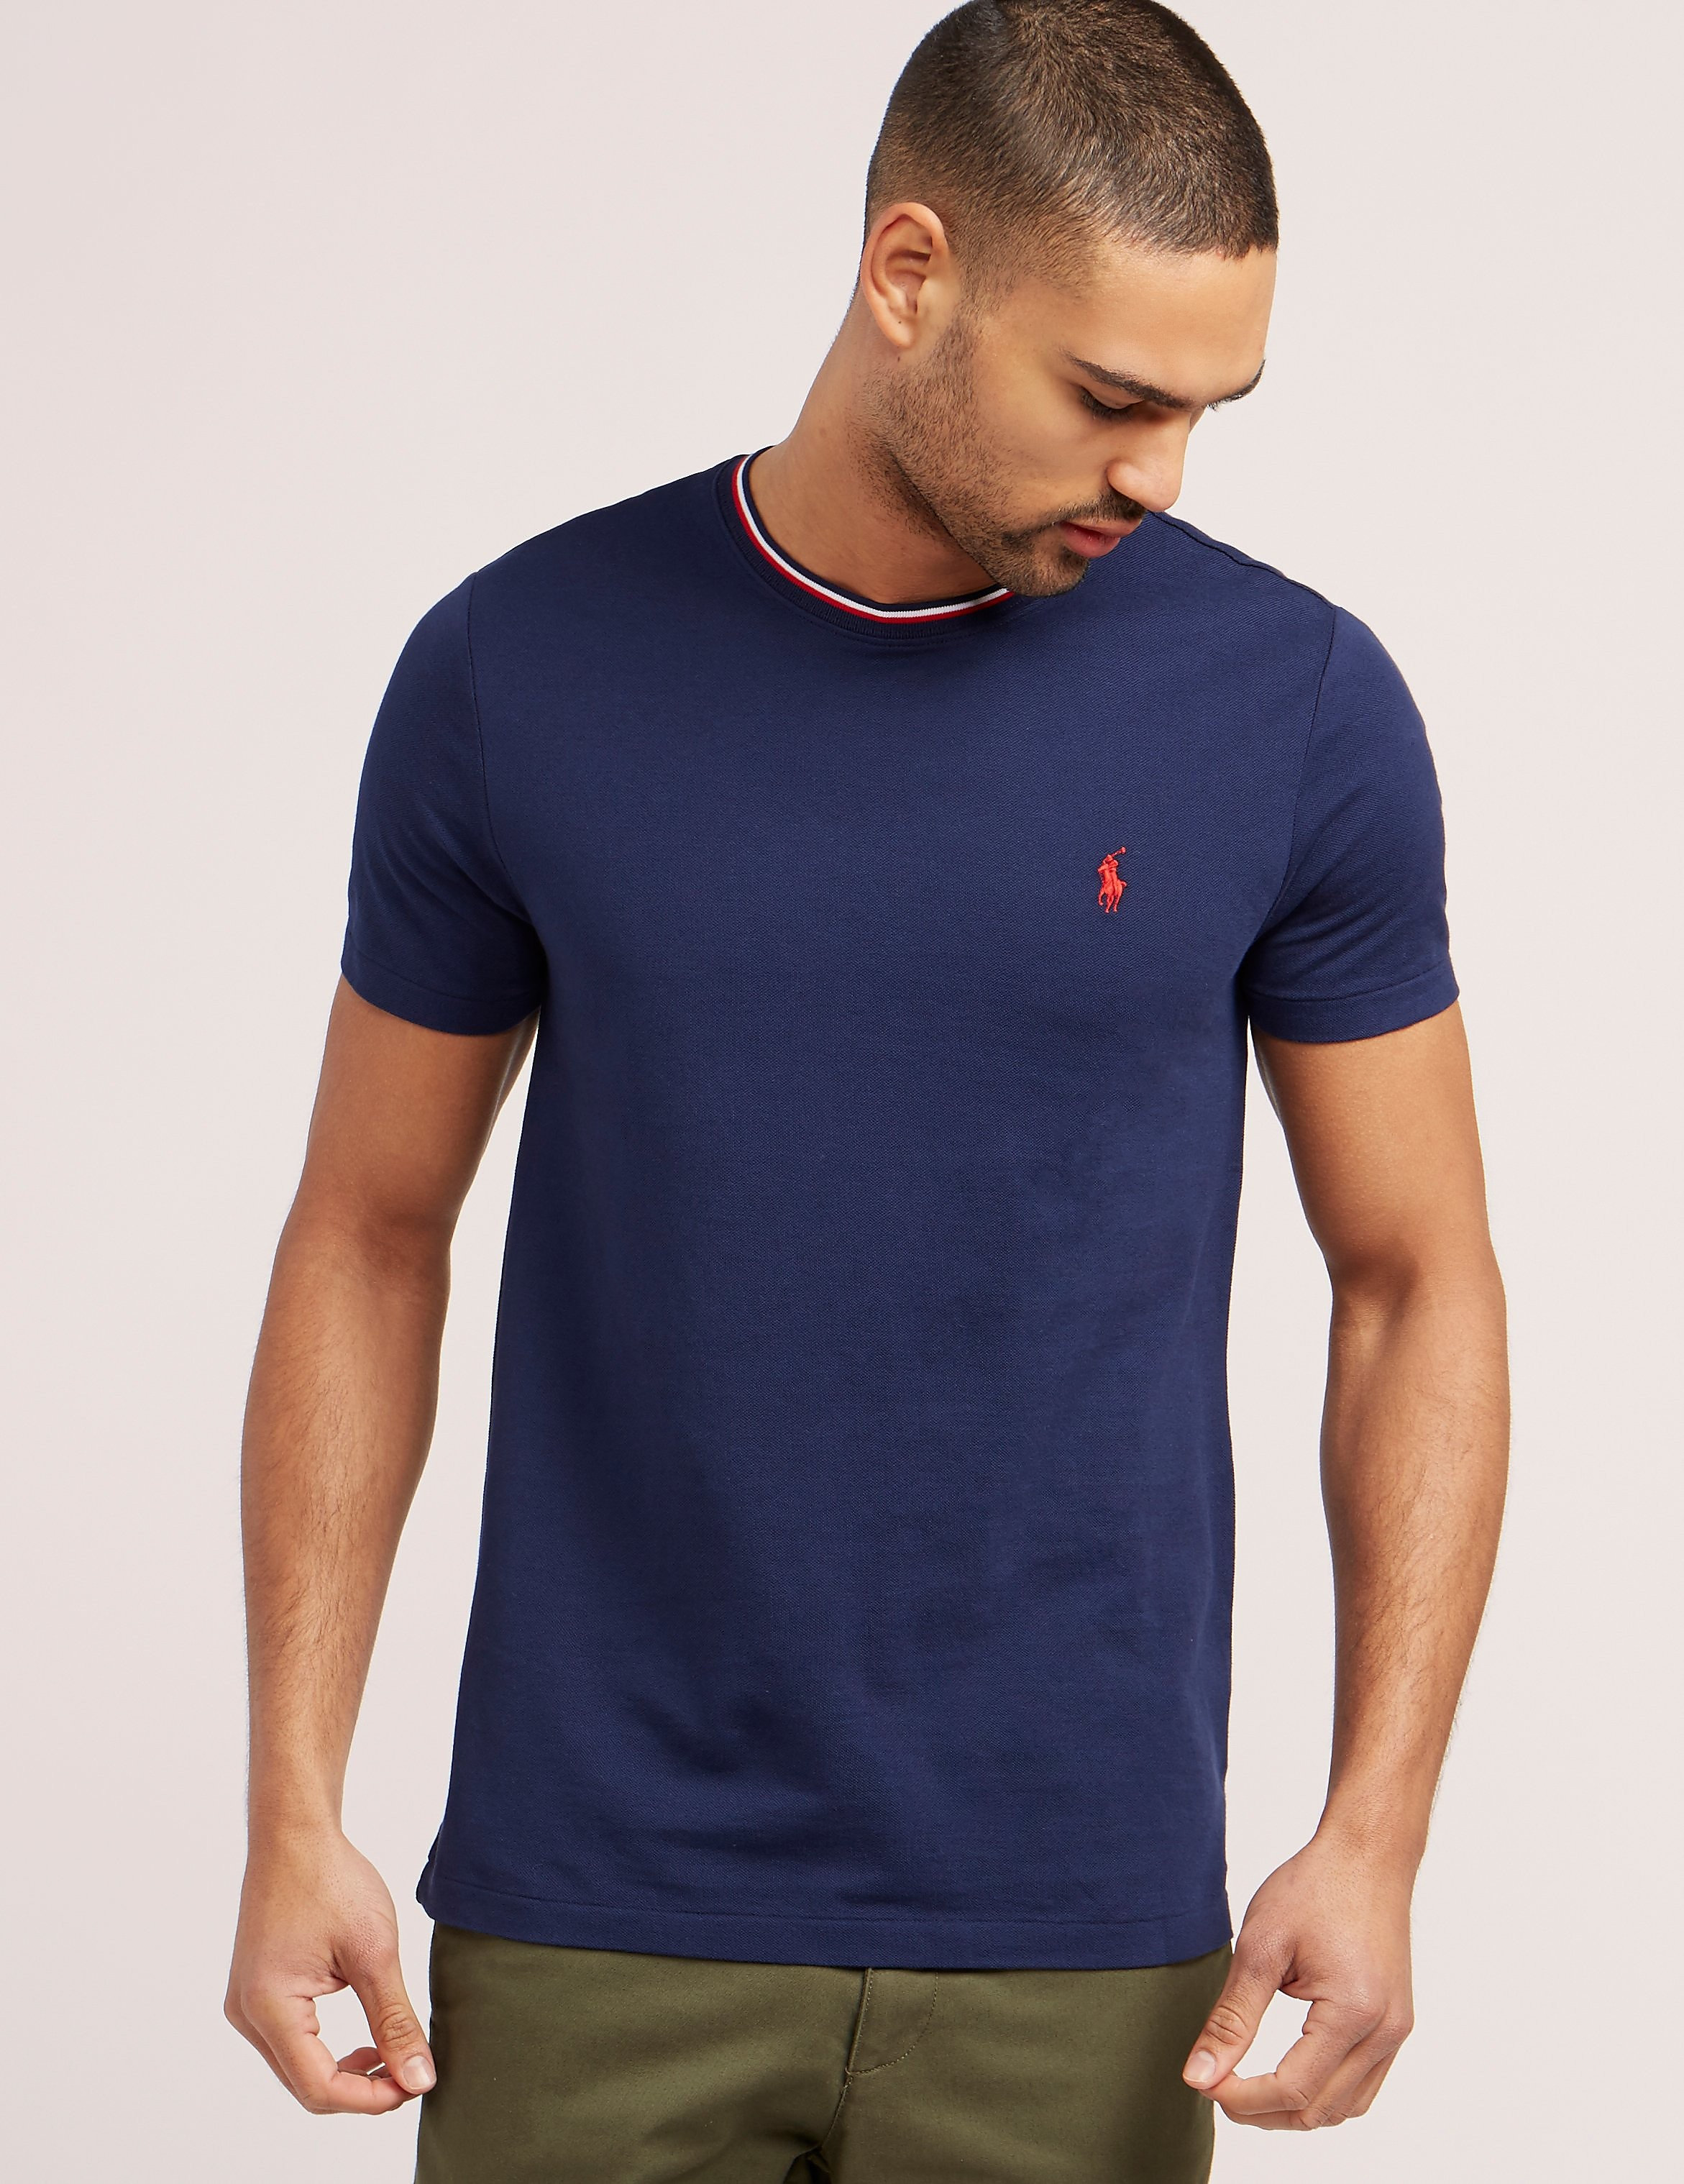 Polo Ralph Lauren Tipped Short Sleeve T-Shirt